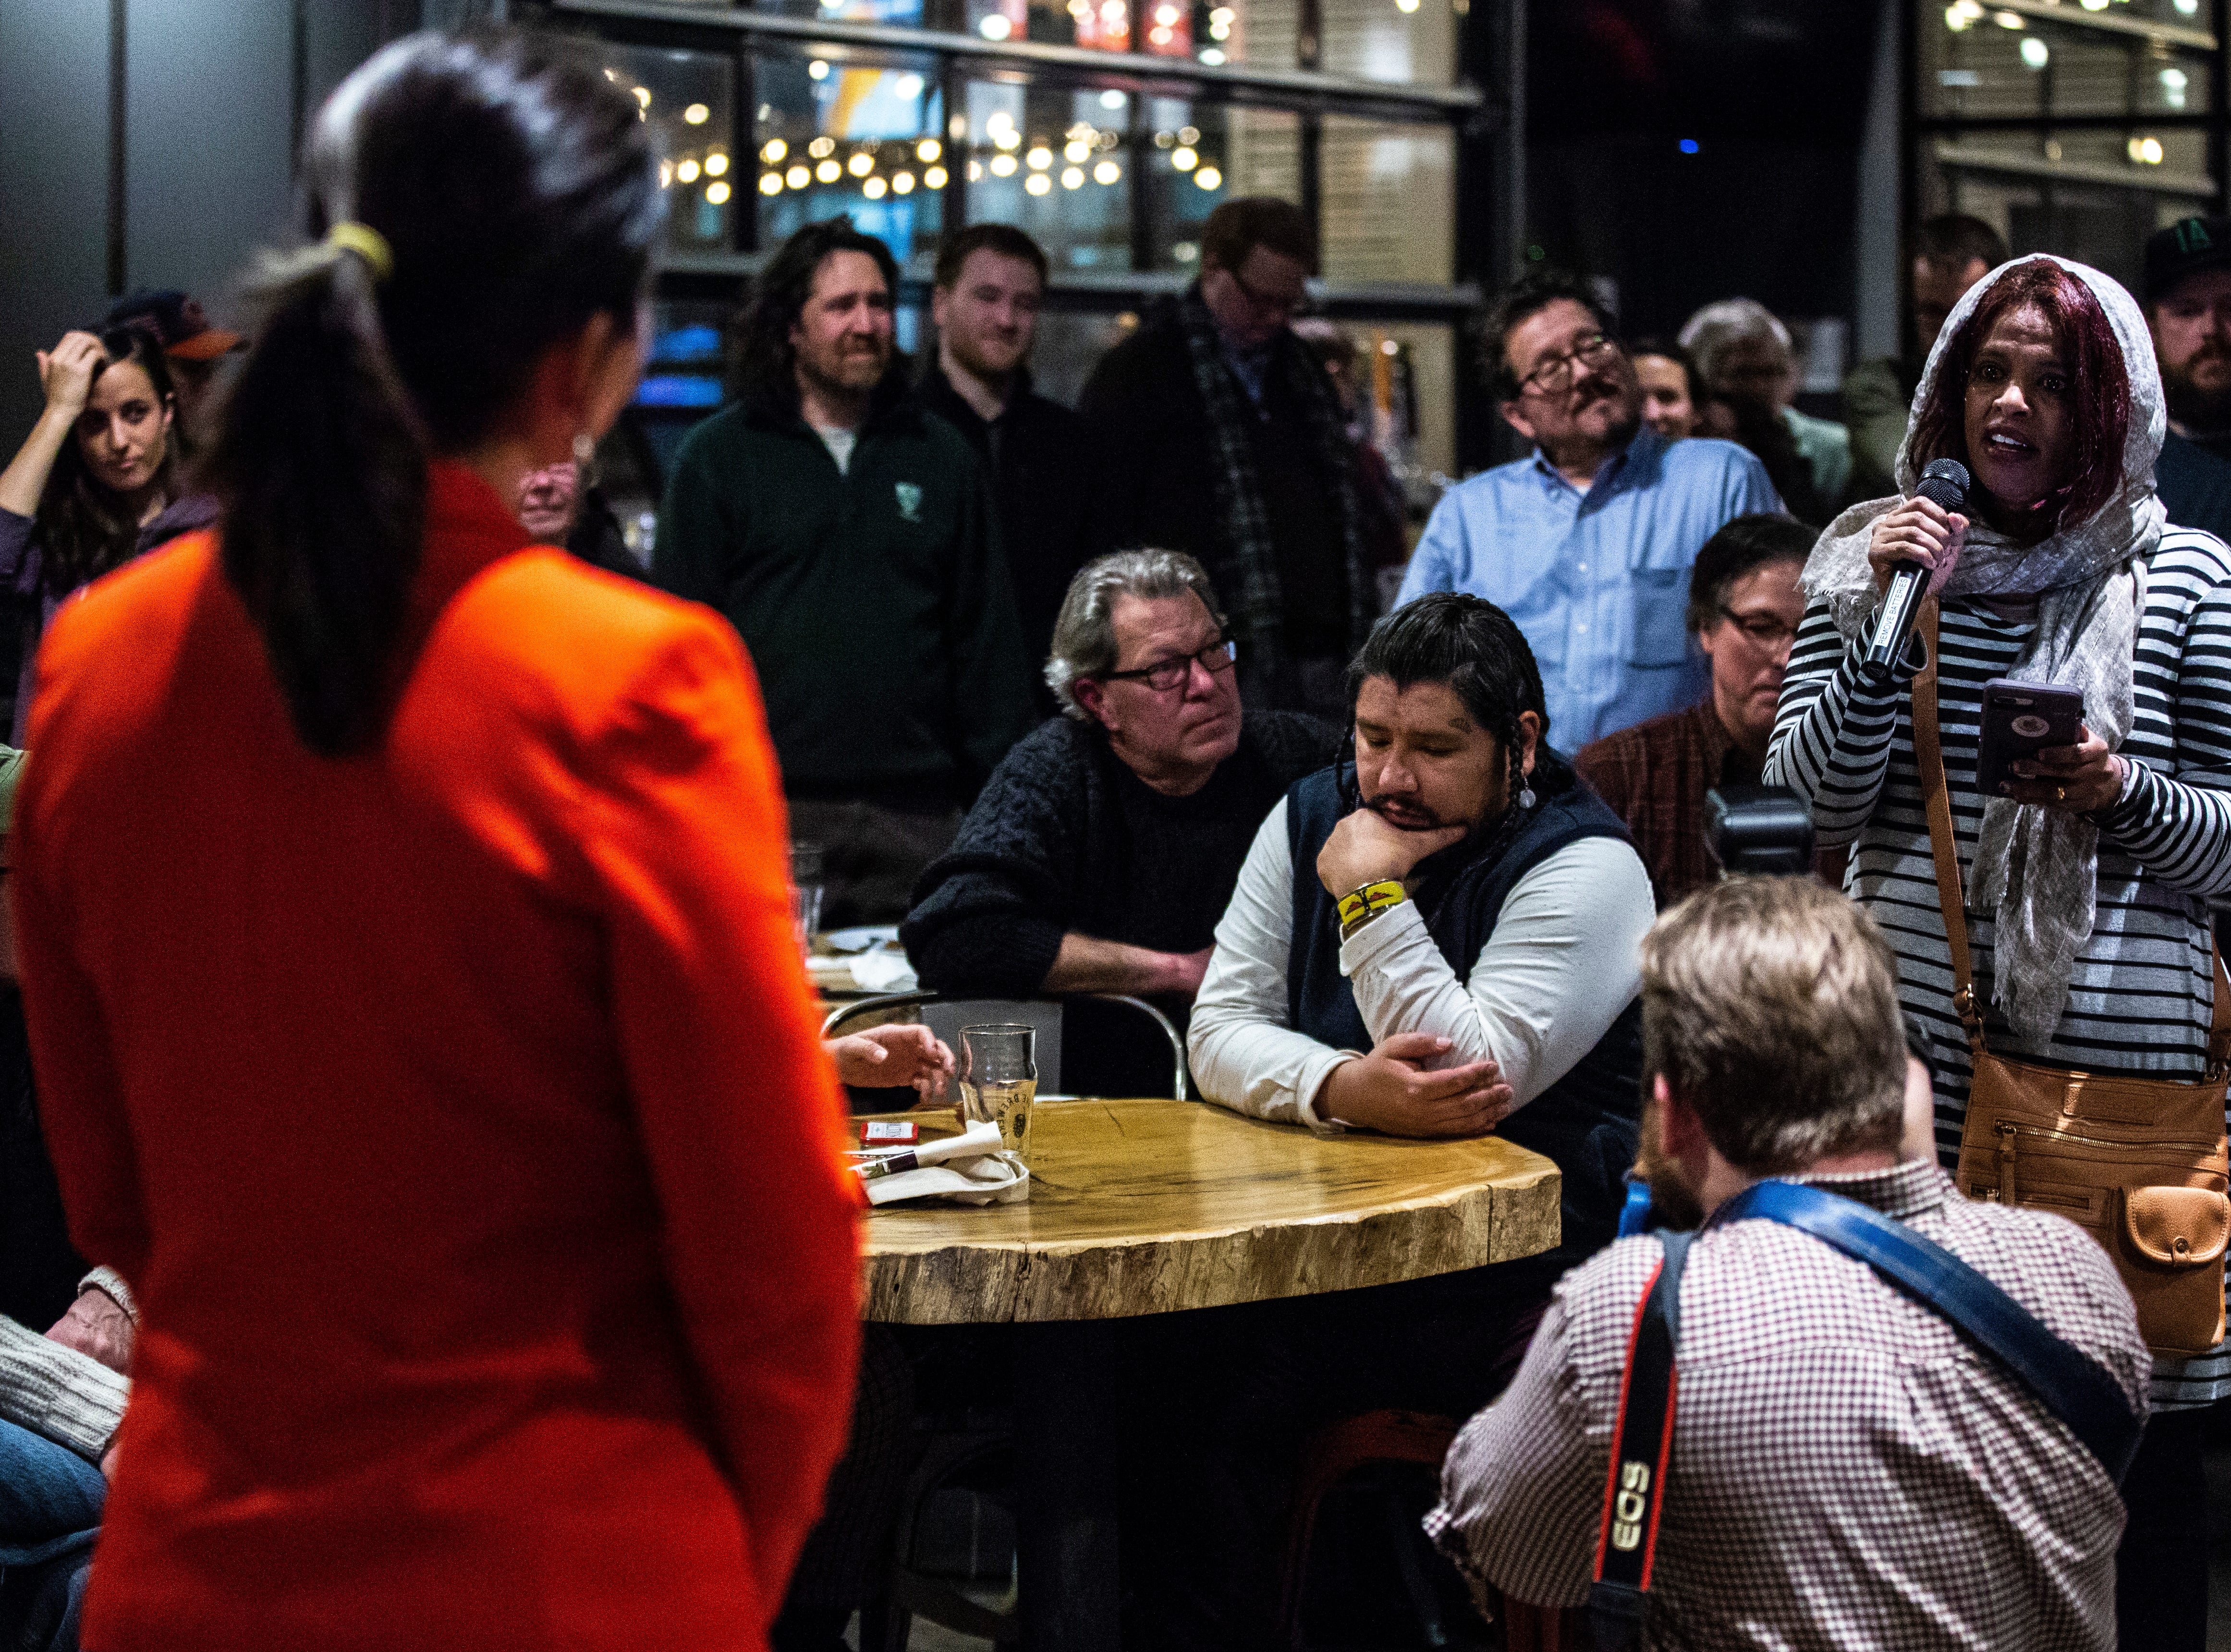 U.S. Rep. Tulsi Gabbard, D-Hawaii, listens to a question from Iowa City Councilor Mazahir Salih during an event on Gabbard's first trip to Iowa since declaring her intent to run for president on Monday, Feb. 11, 2019 at Big Grove Brewery in Iowa City.